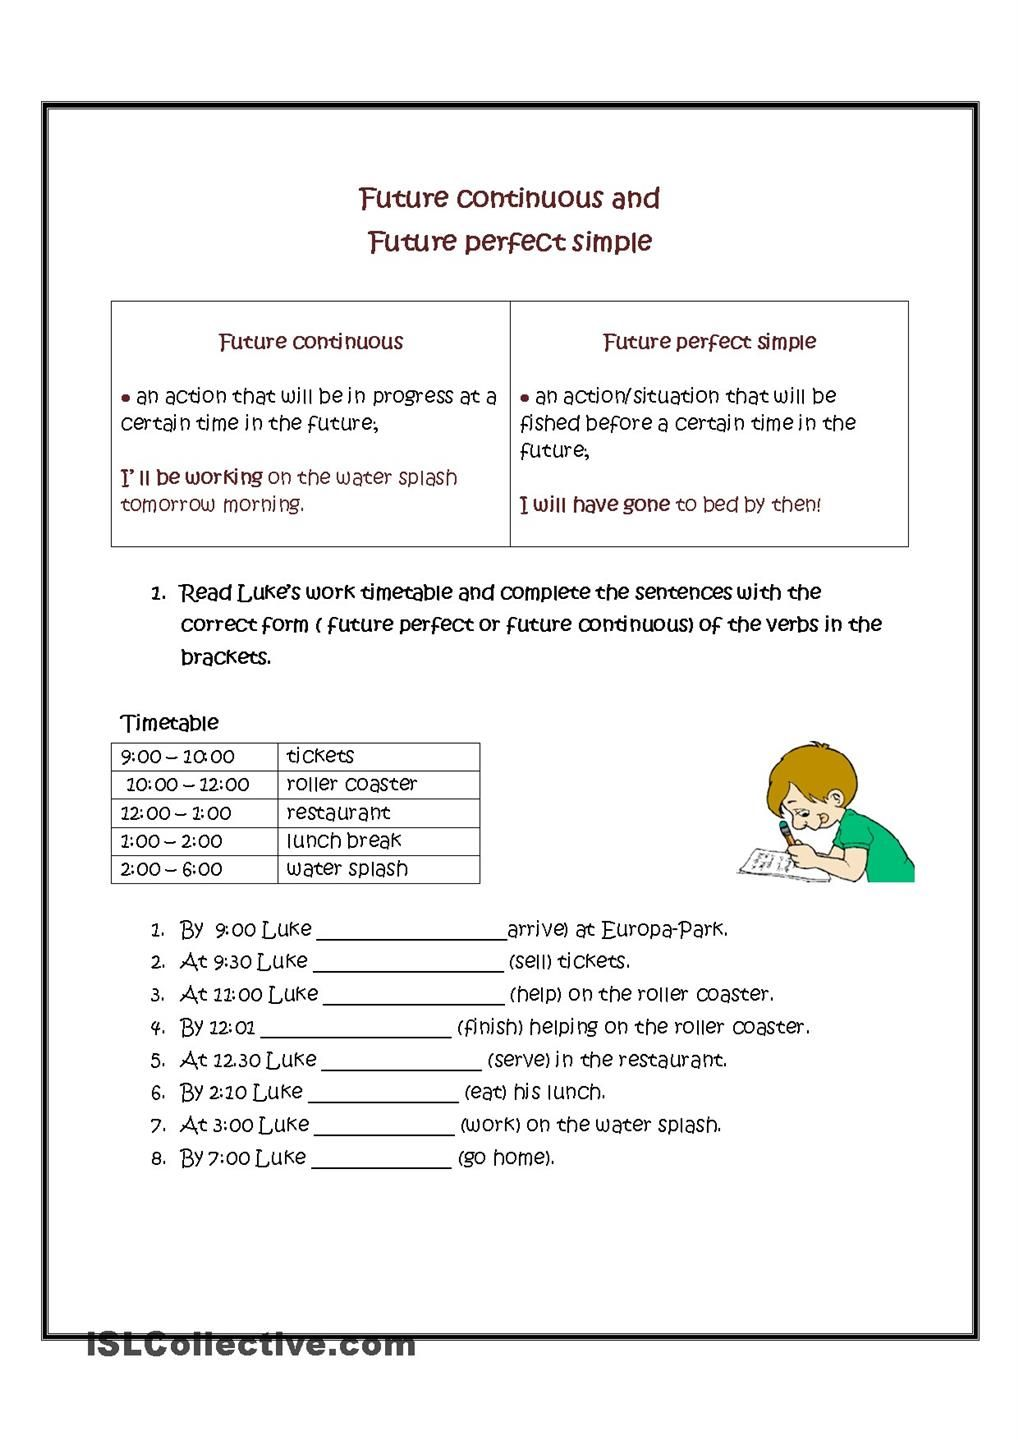 Future continuous vs future perfect simple a key future continuous tense will be v ing future perfect simple and continuous progressive tense future